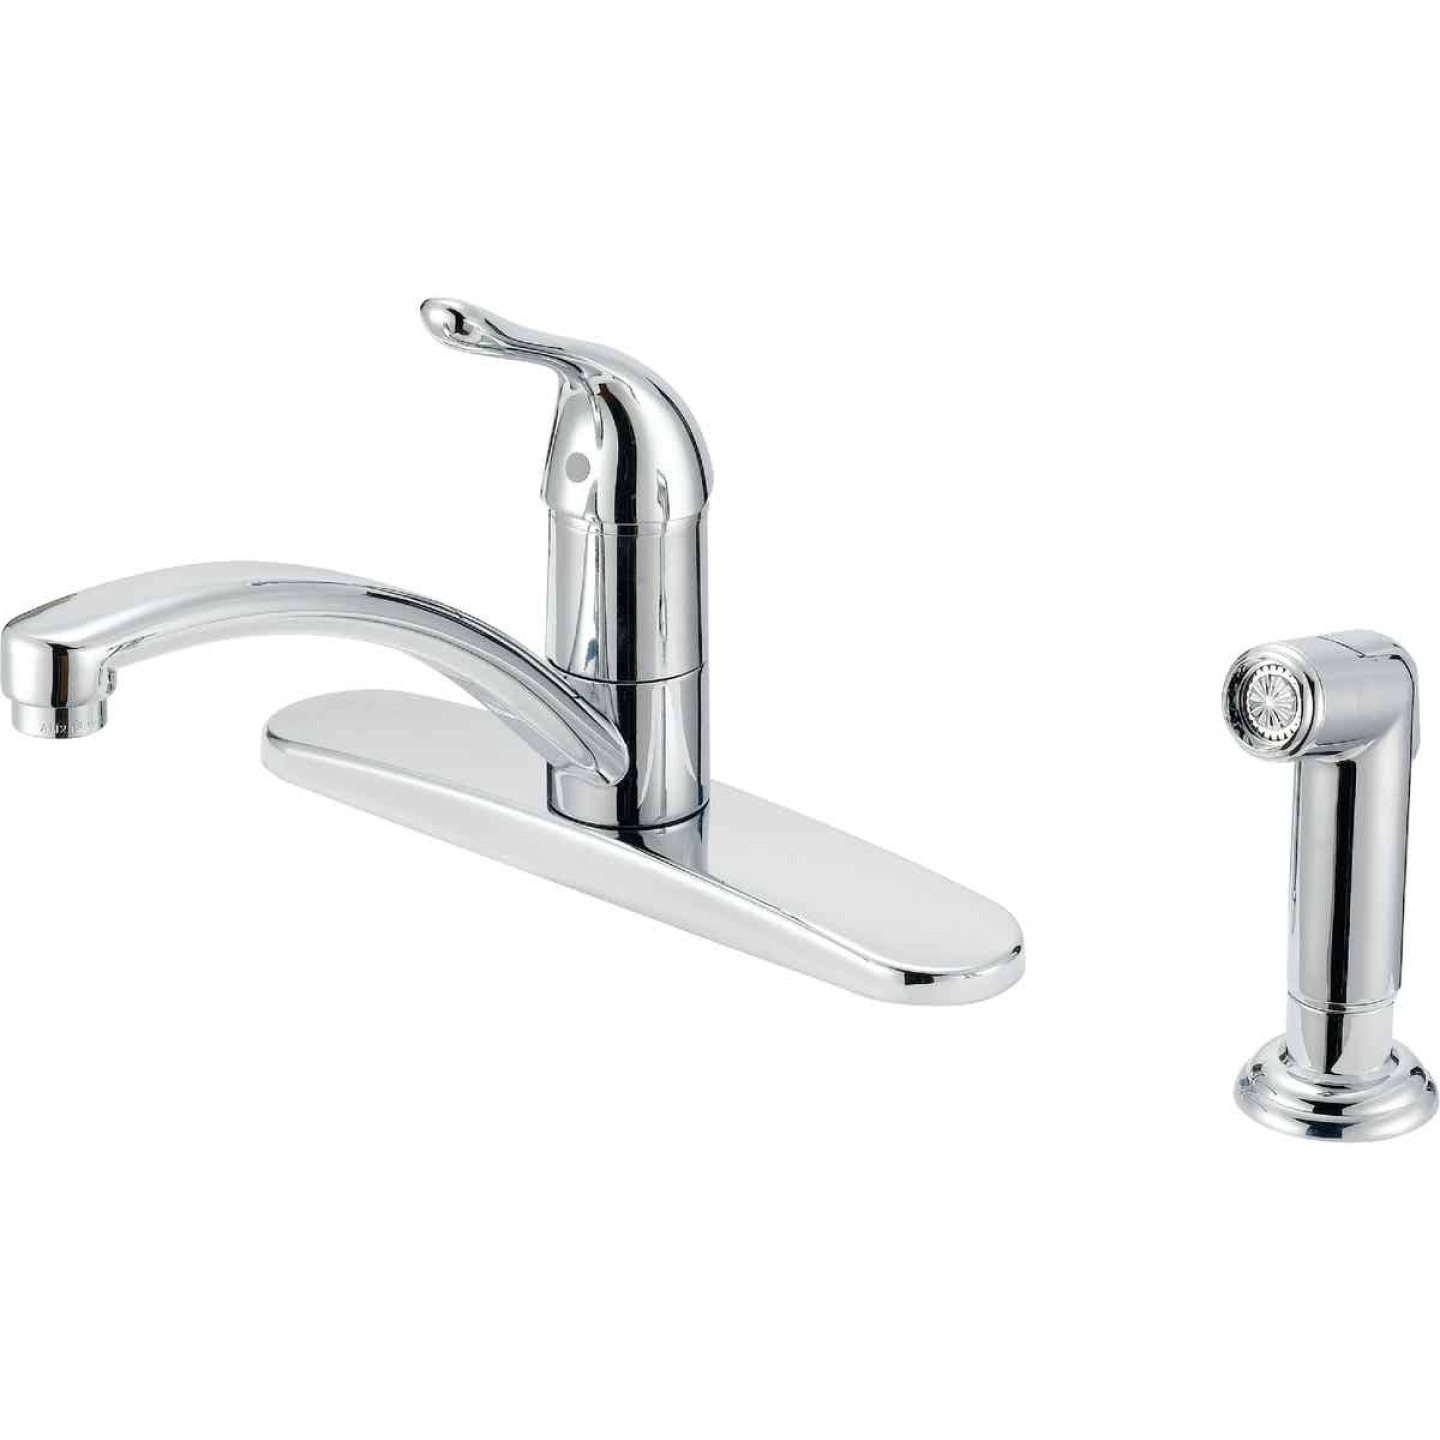 Home Impressions Single Handle Lever Kitchen Faucet with Side Spray, Chrome Image 1